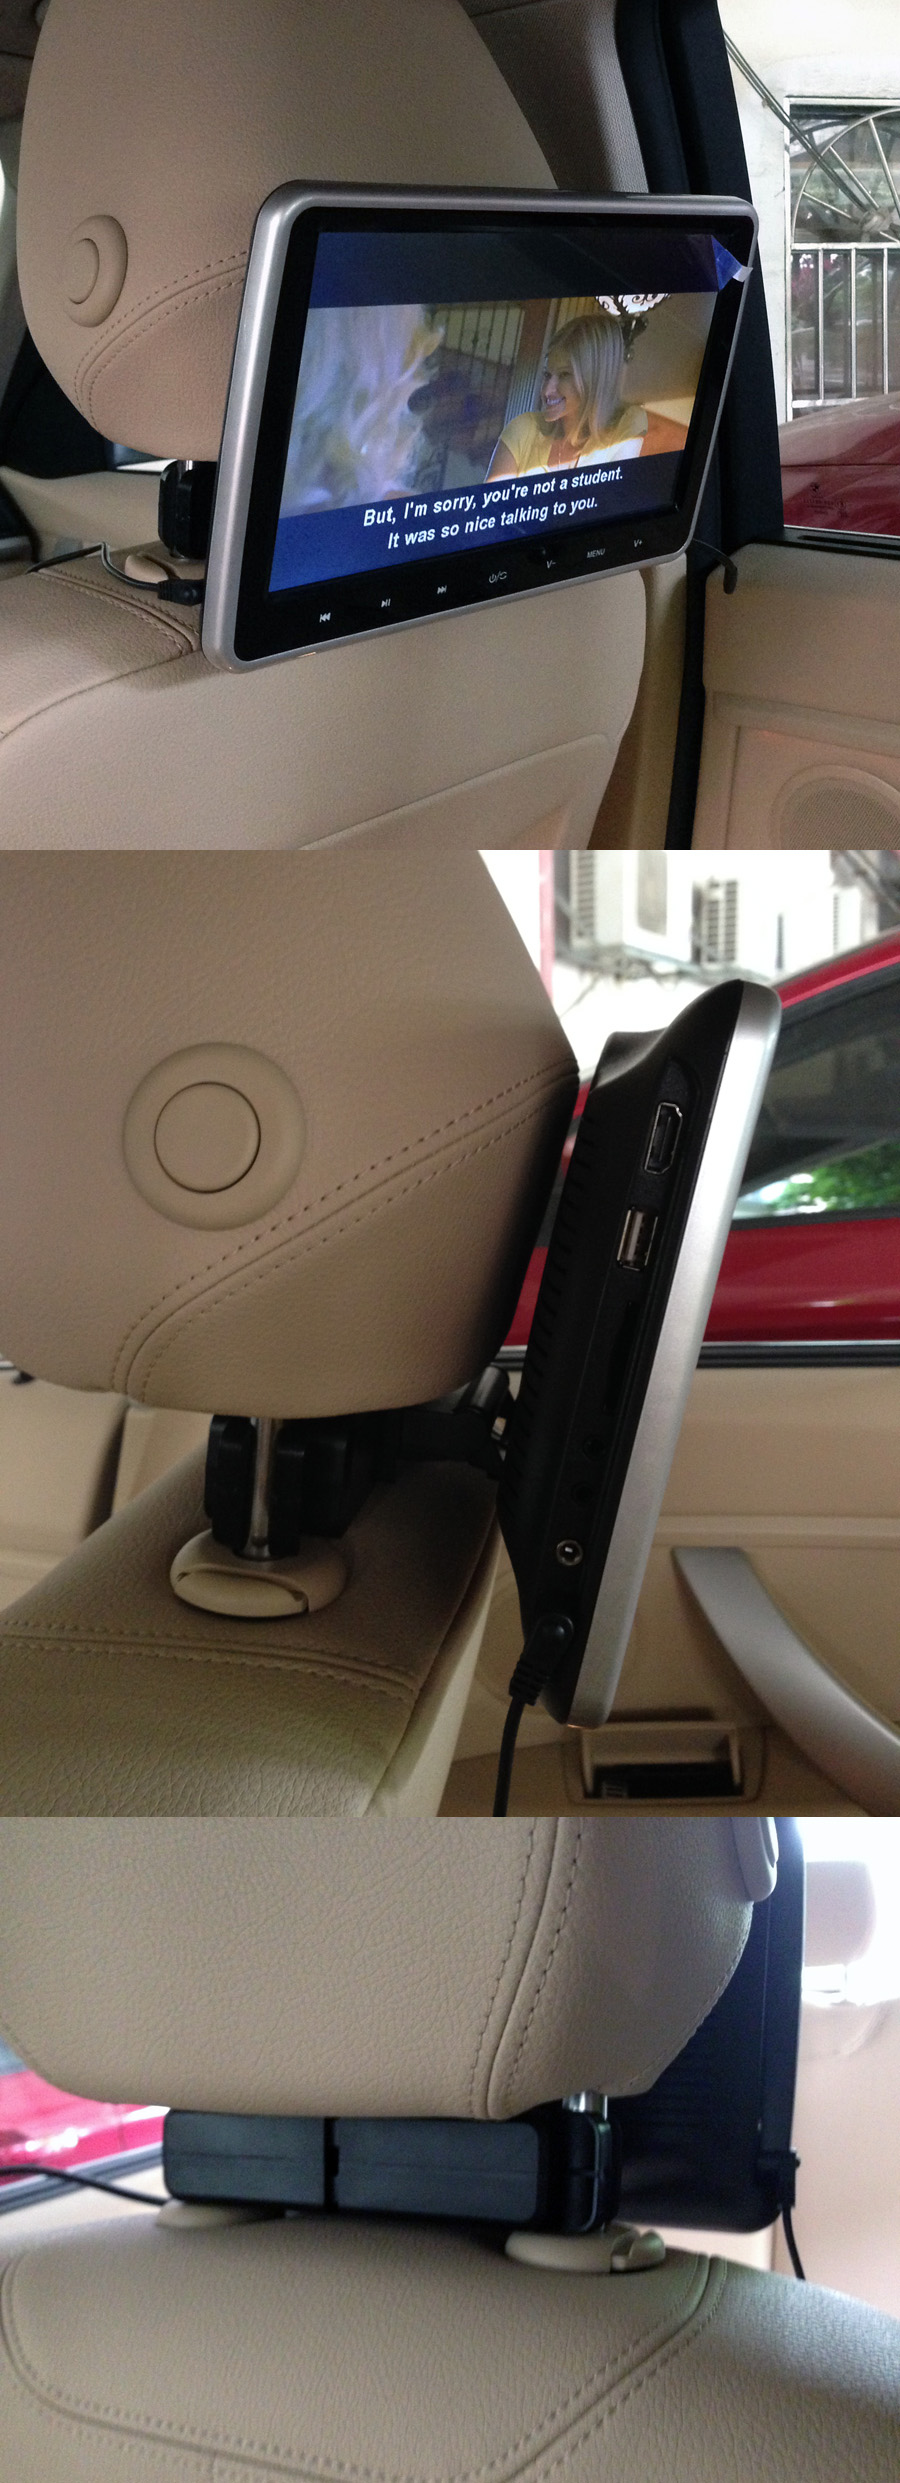 "10.1"" headrest monitor with touch button"